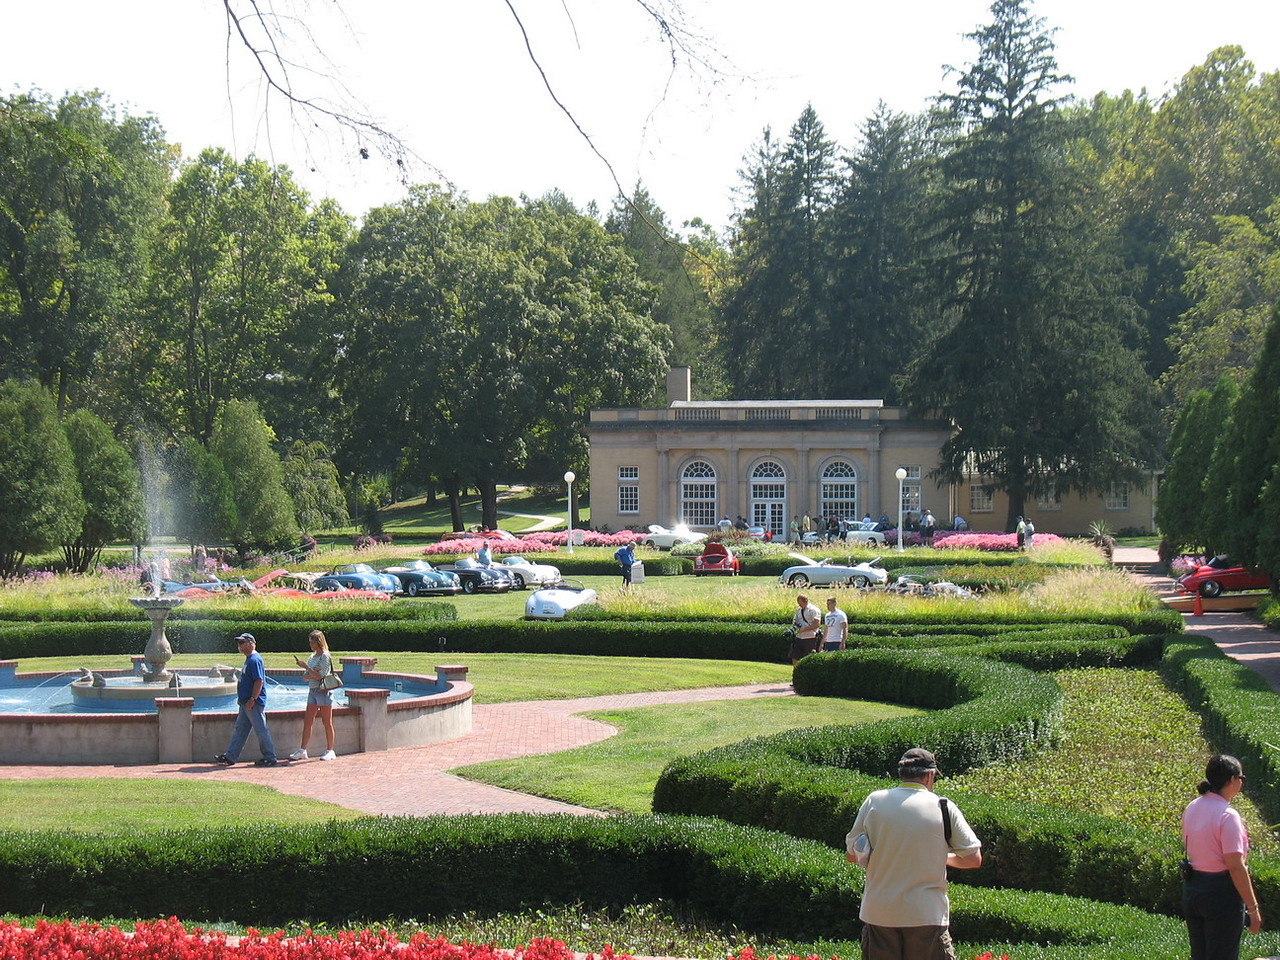 The gardens with cars for the car show.